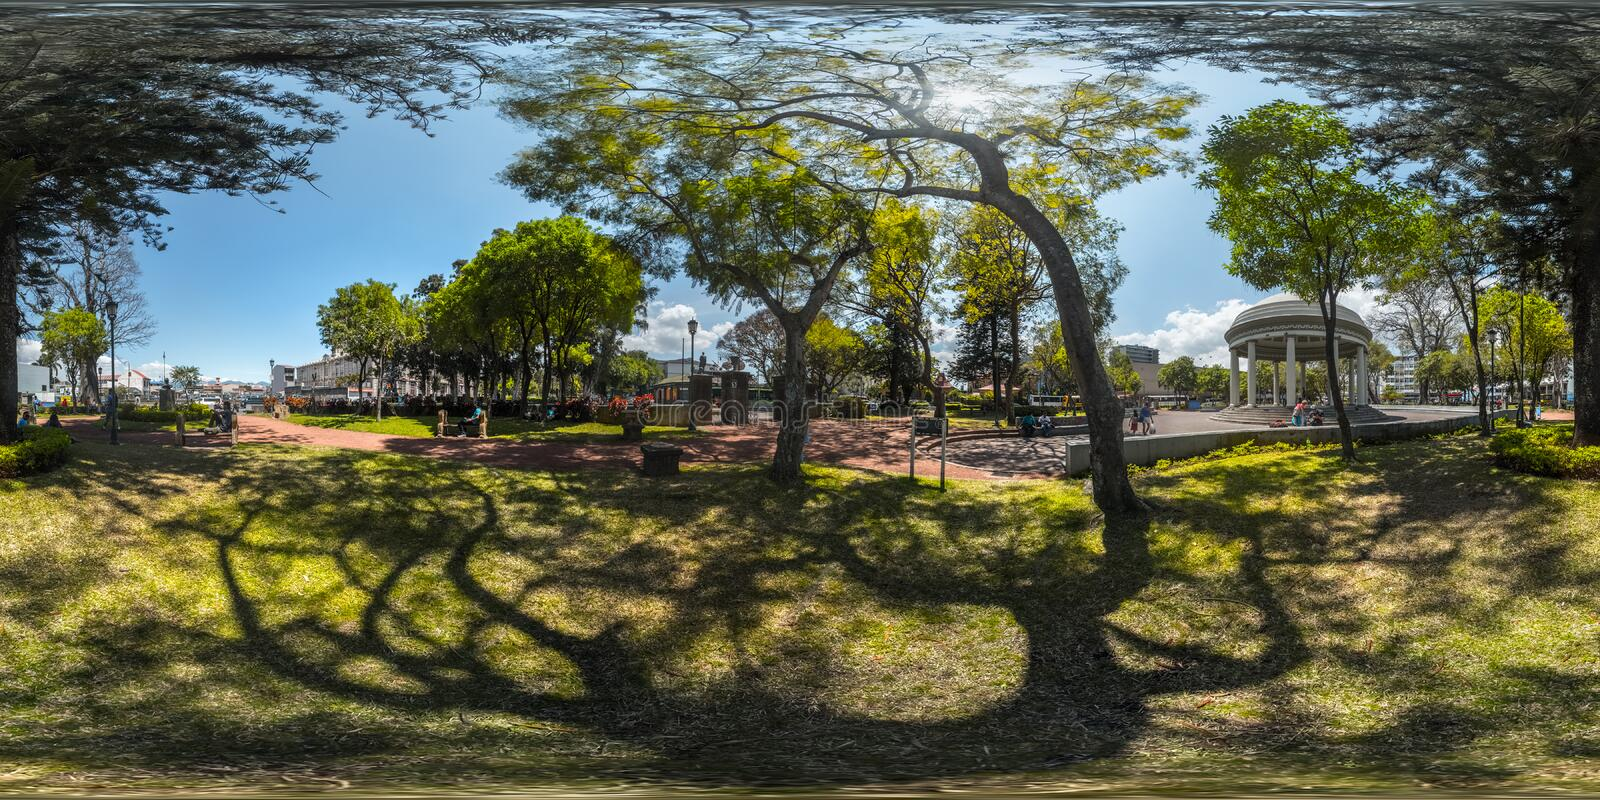 Panorama esférico do parque verde imagem de stock royalty free